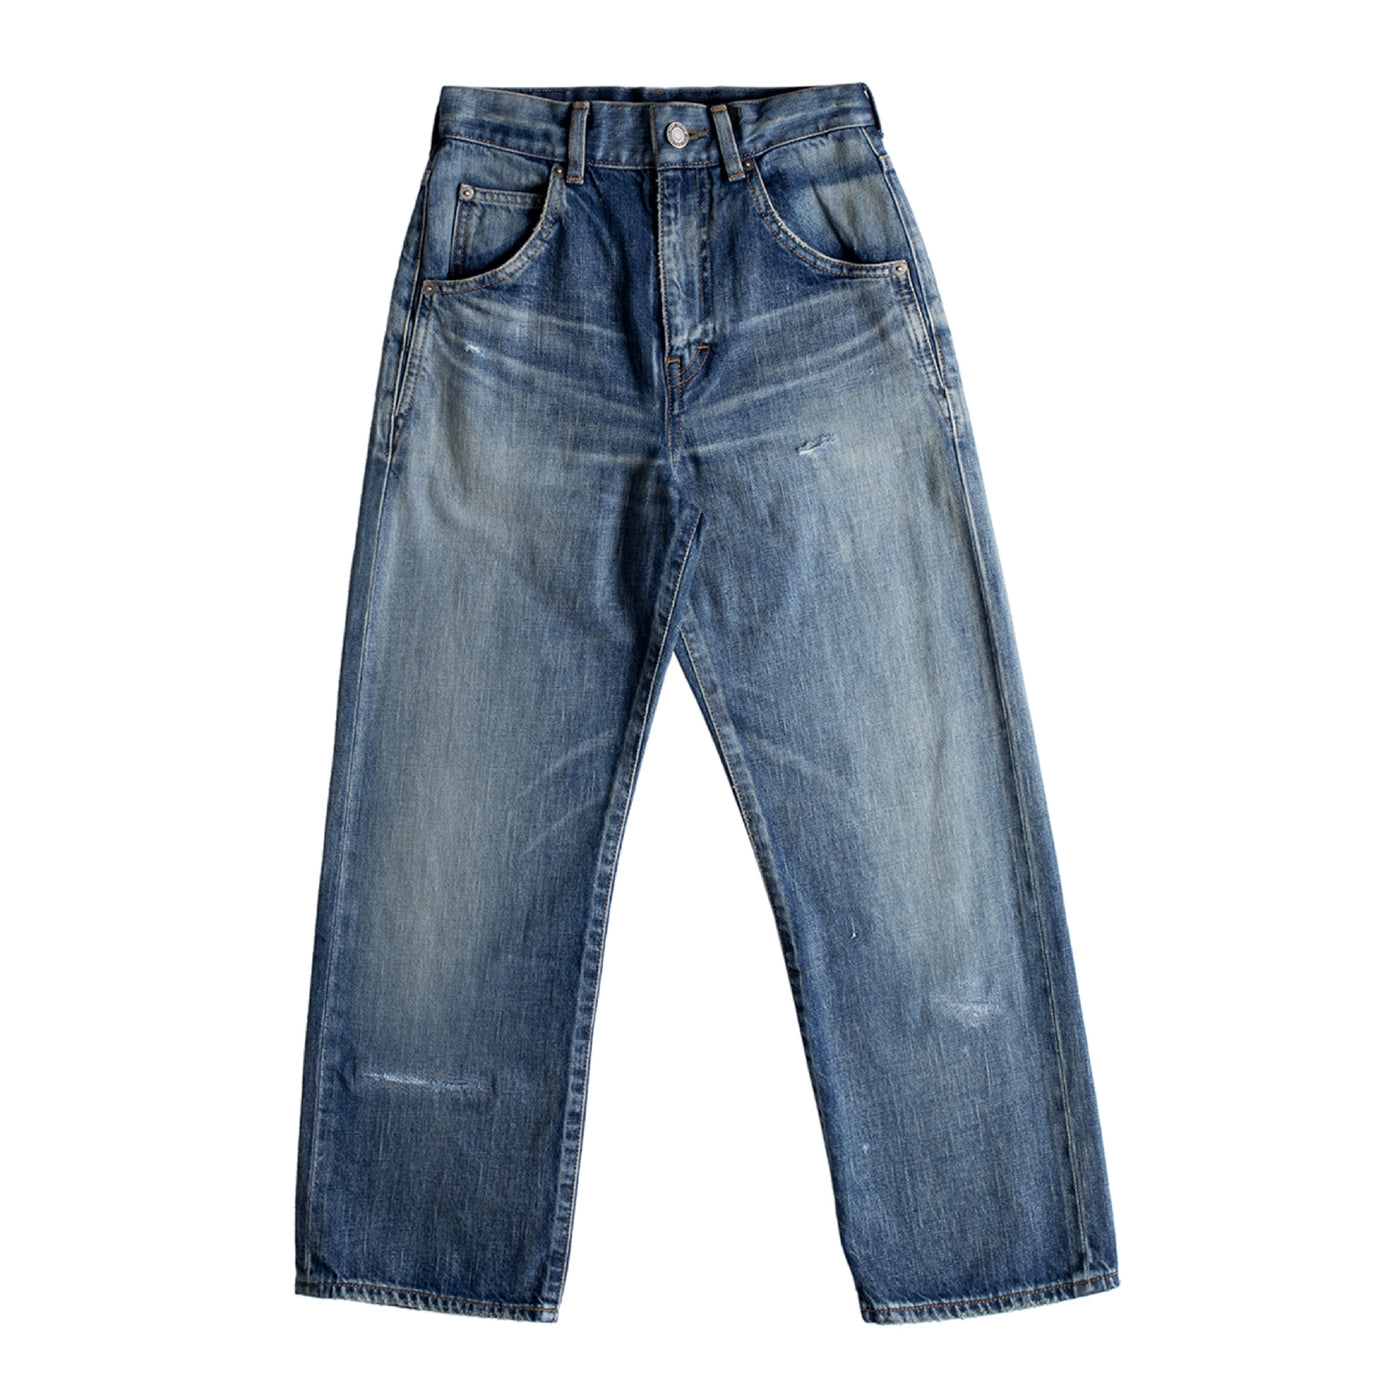 Load image into Gallery viewer, SAINT LAURENT 70S CROP DENIM JEANS BLUE